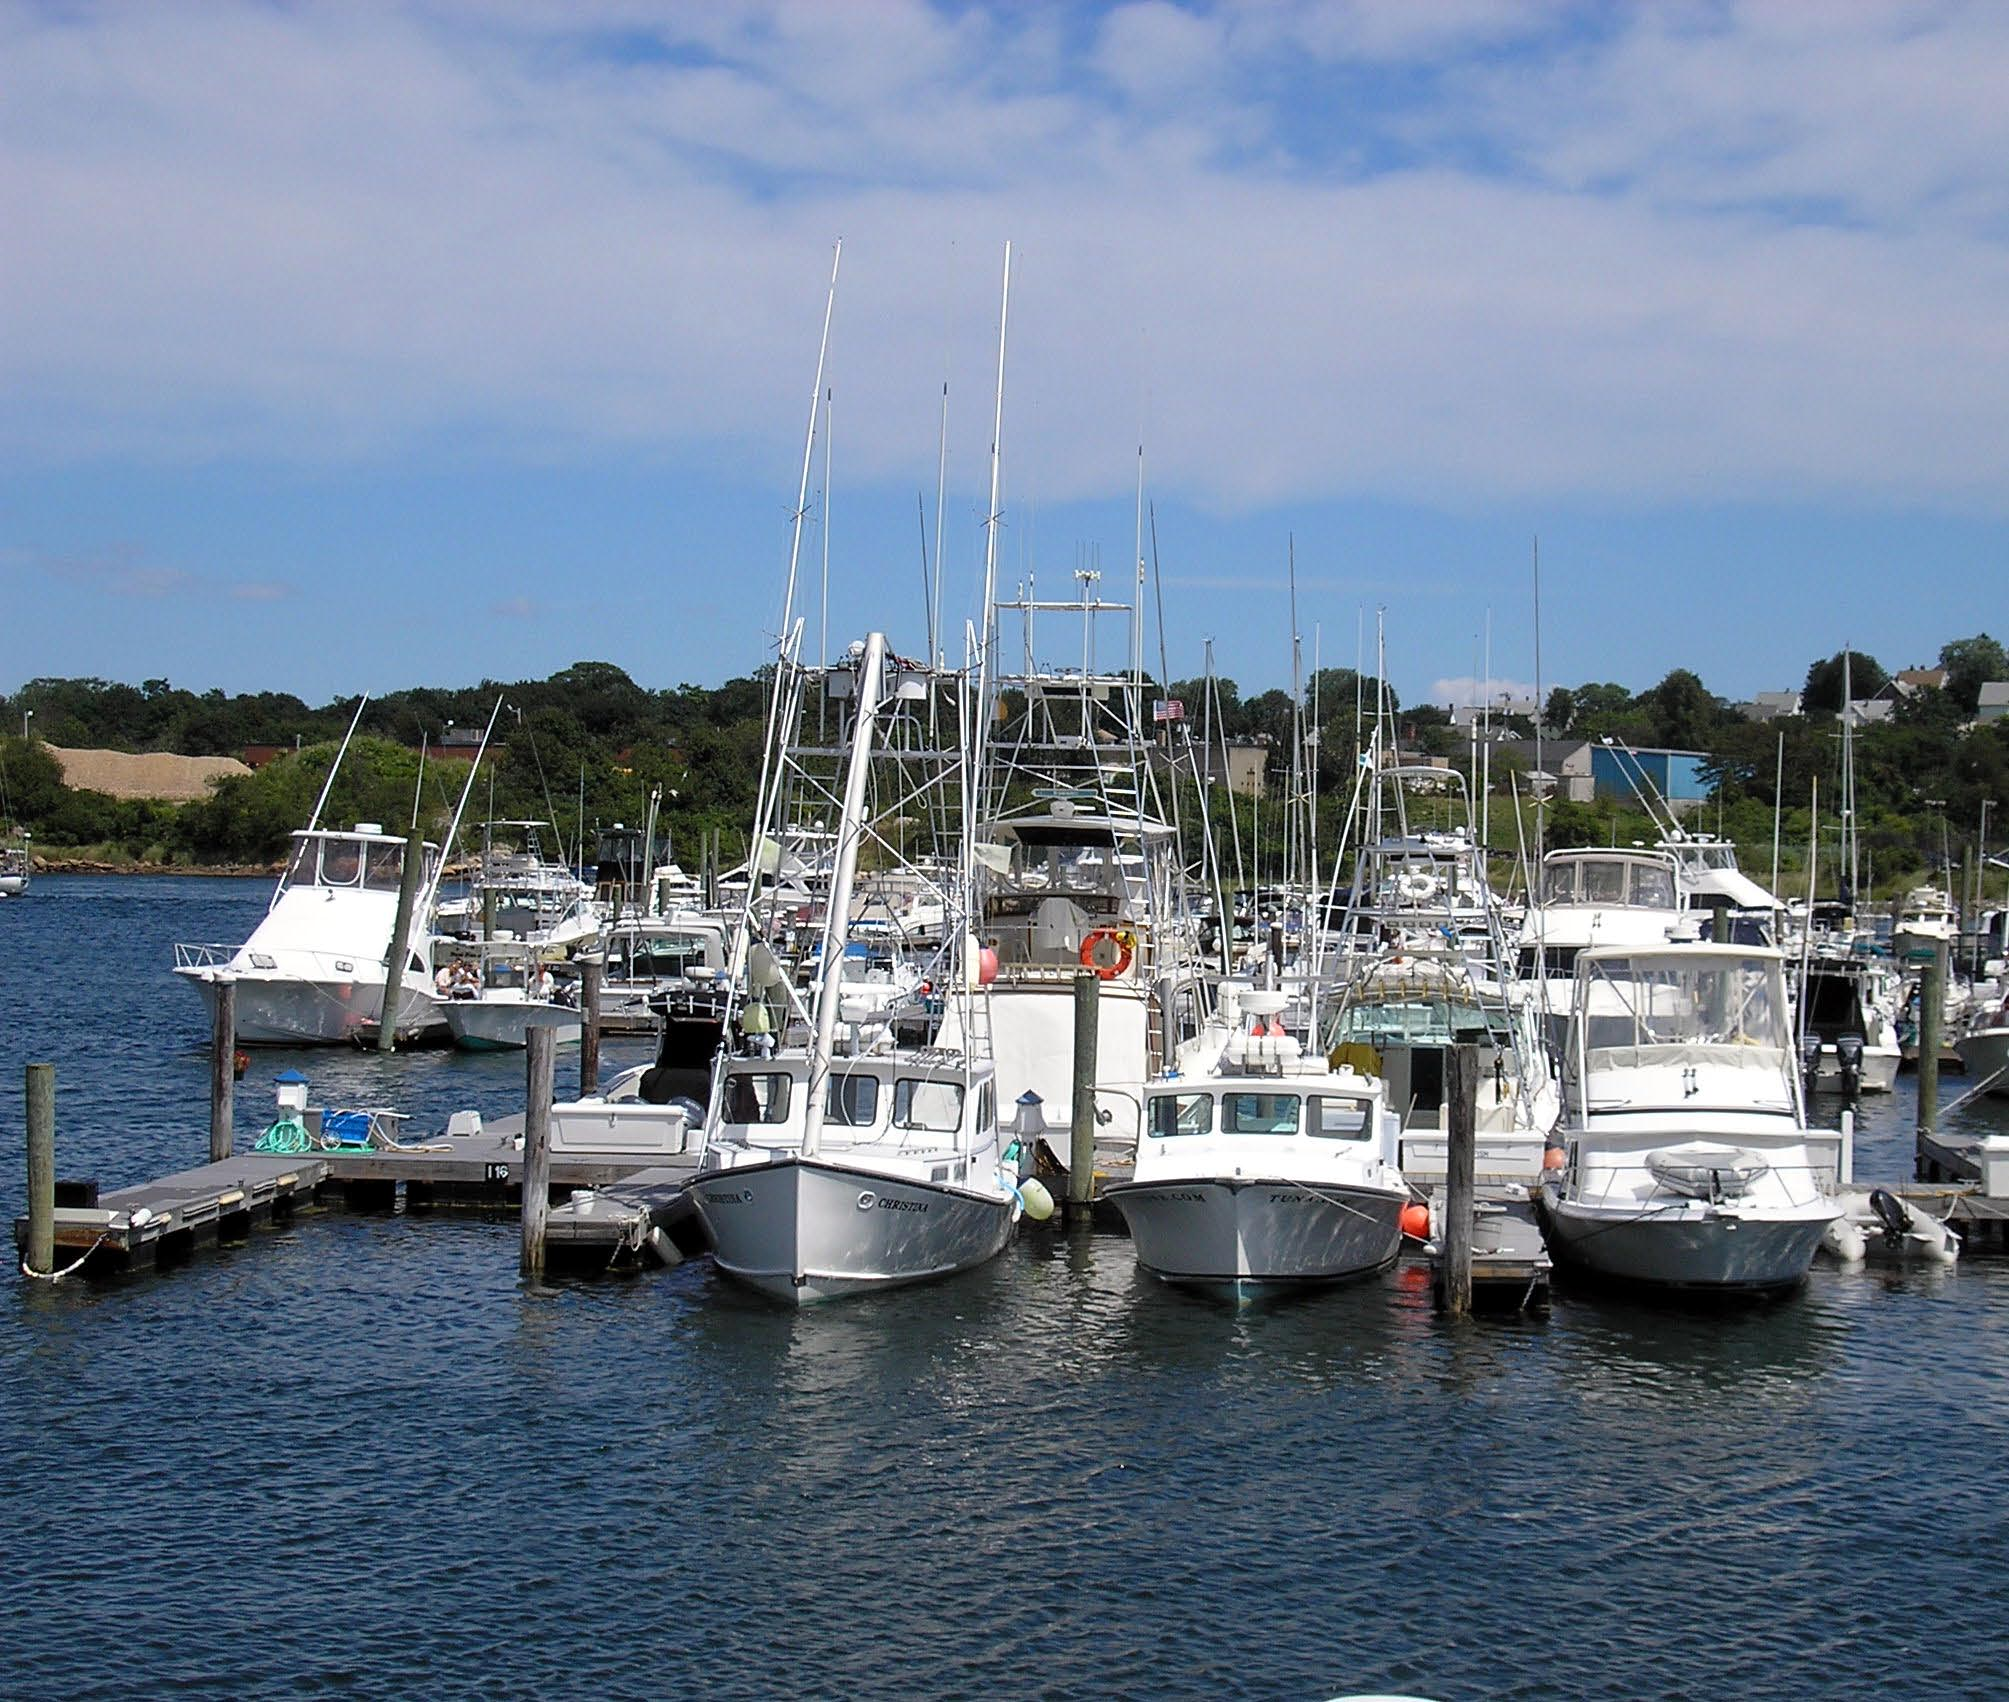 Gloucester, MA, Boats, Bspo06, Docks, Fishing, HQ Photo